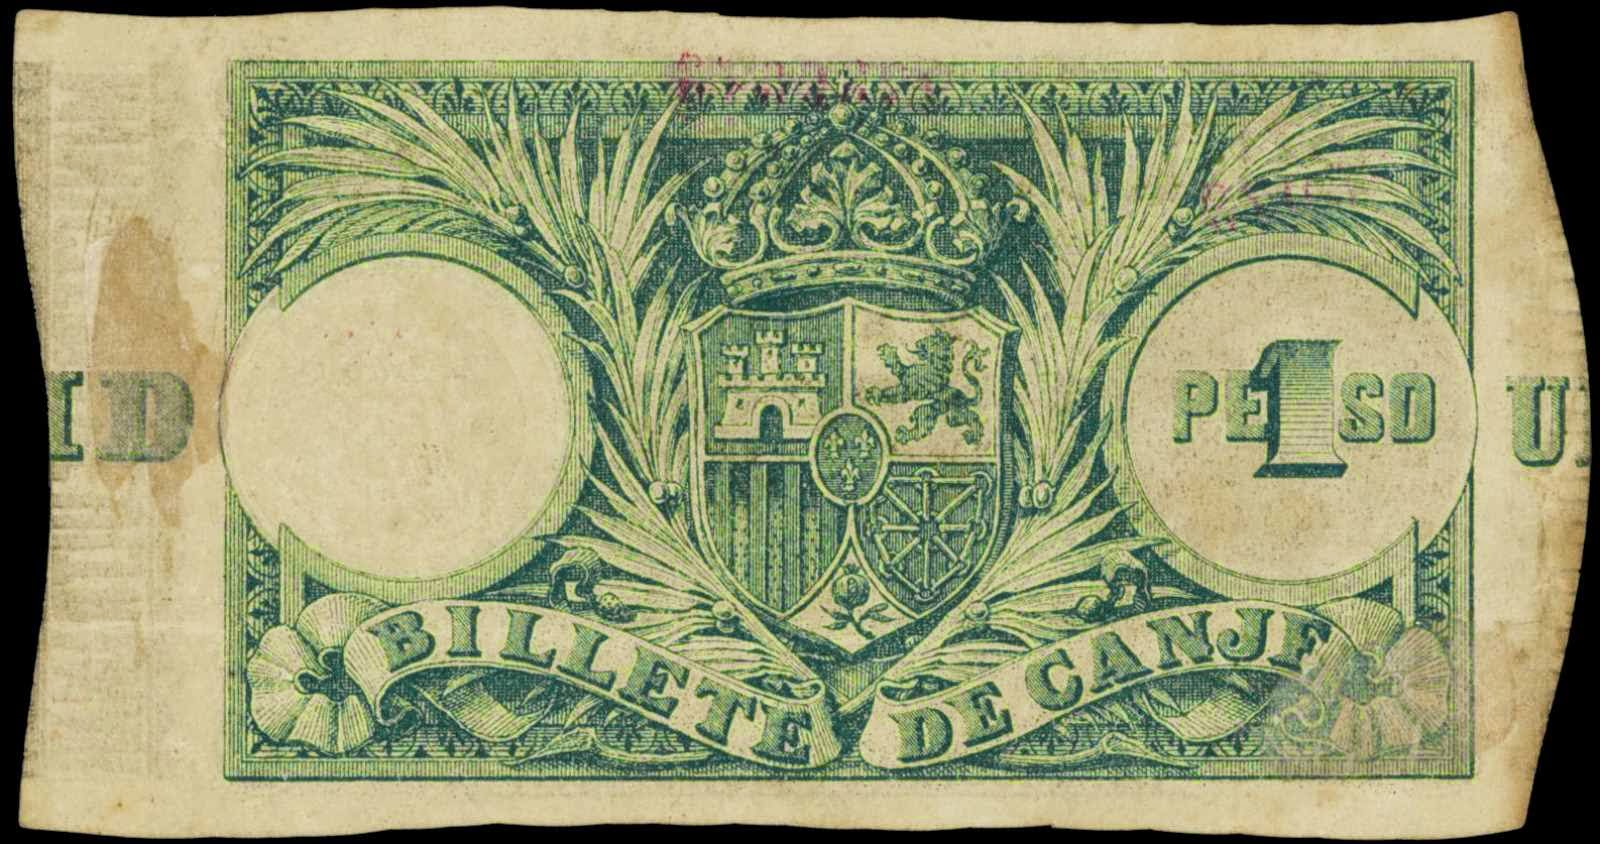 Puerto Rico currency 1 Peso banknote 1895